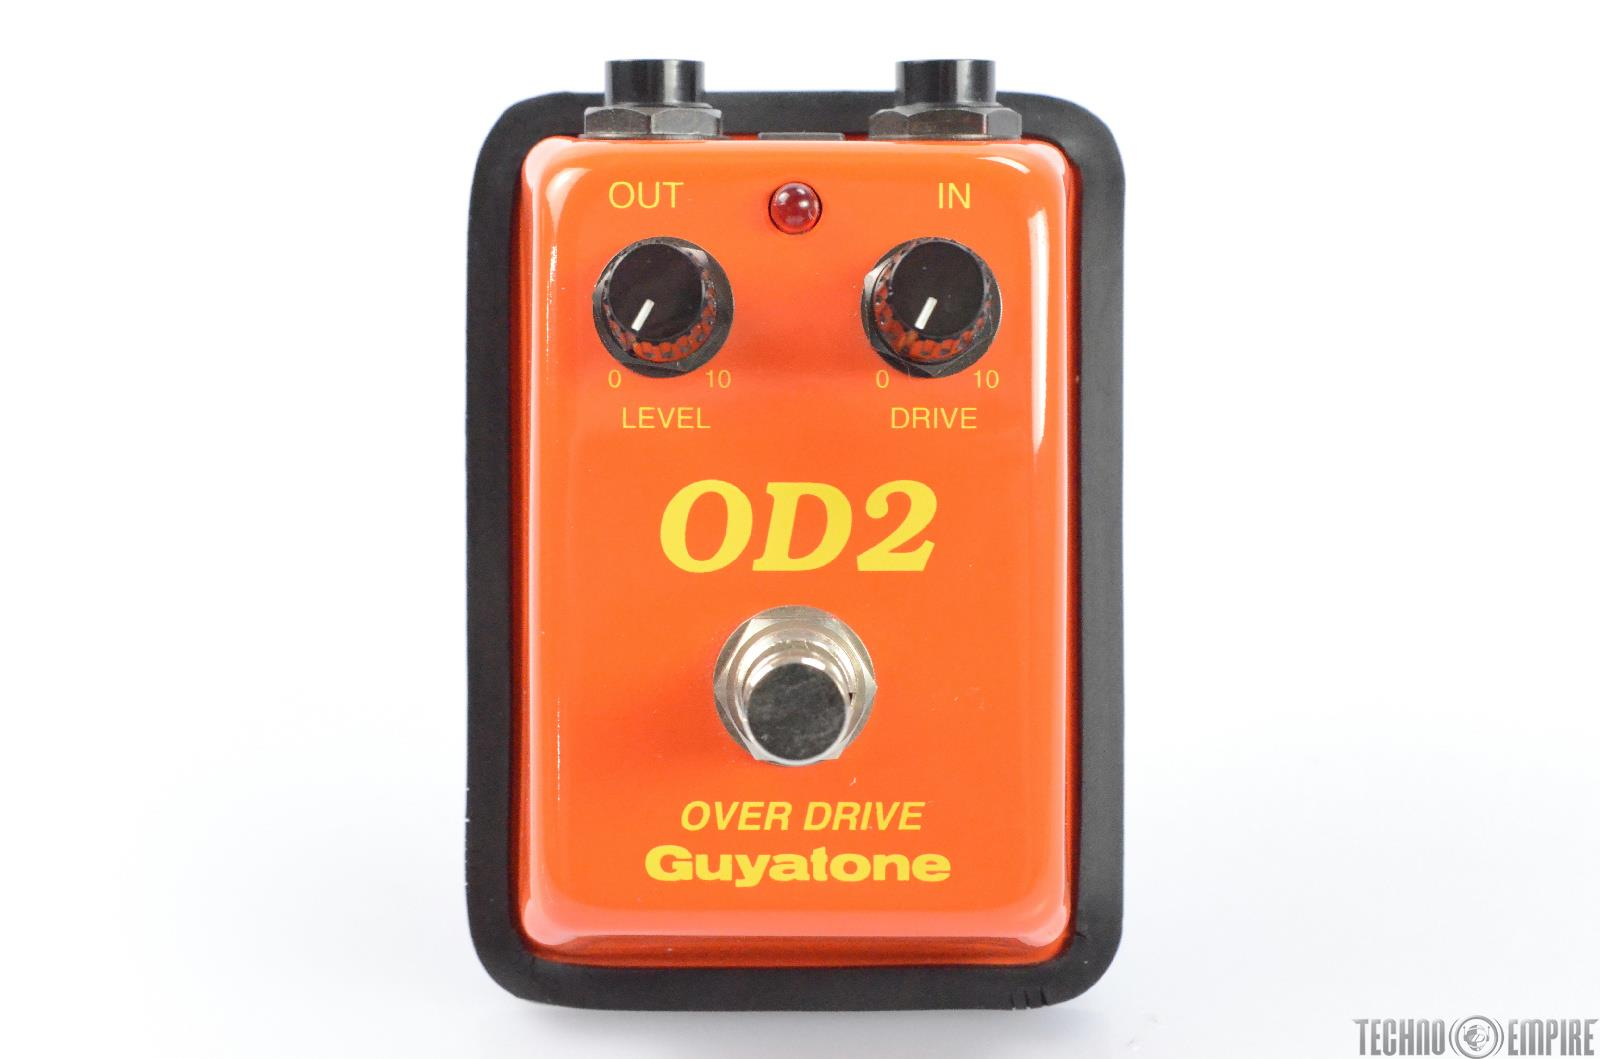 Guyatone OD2 Over Drive Boost Guitar Effect Pedal Fairfax Recordings #27869